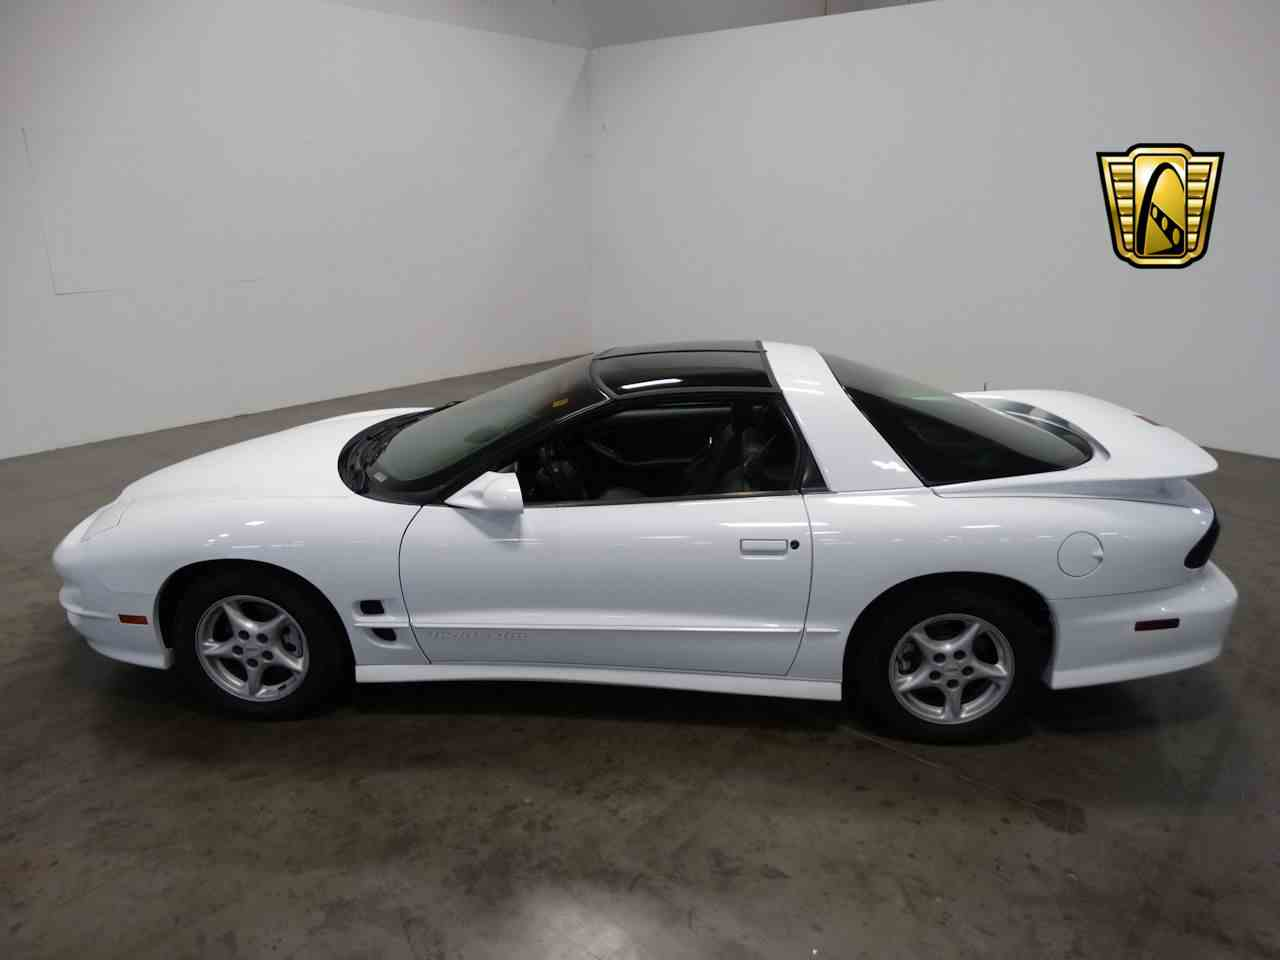 Large Picture of '98 Firebird - M2U0